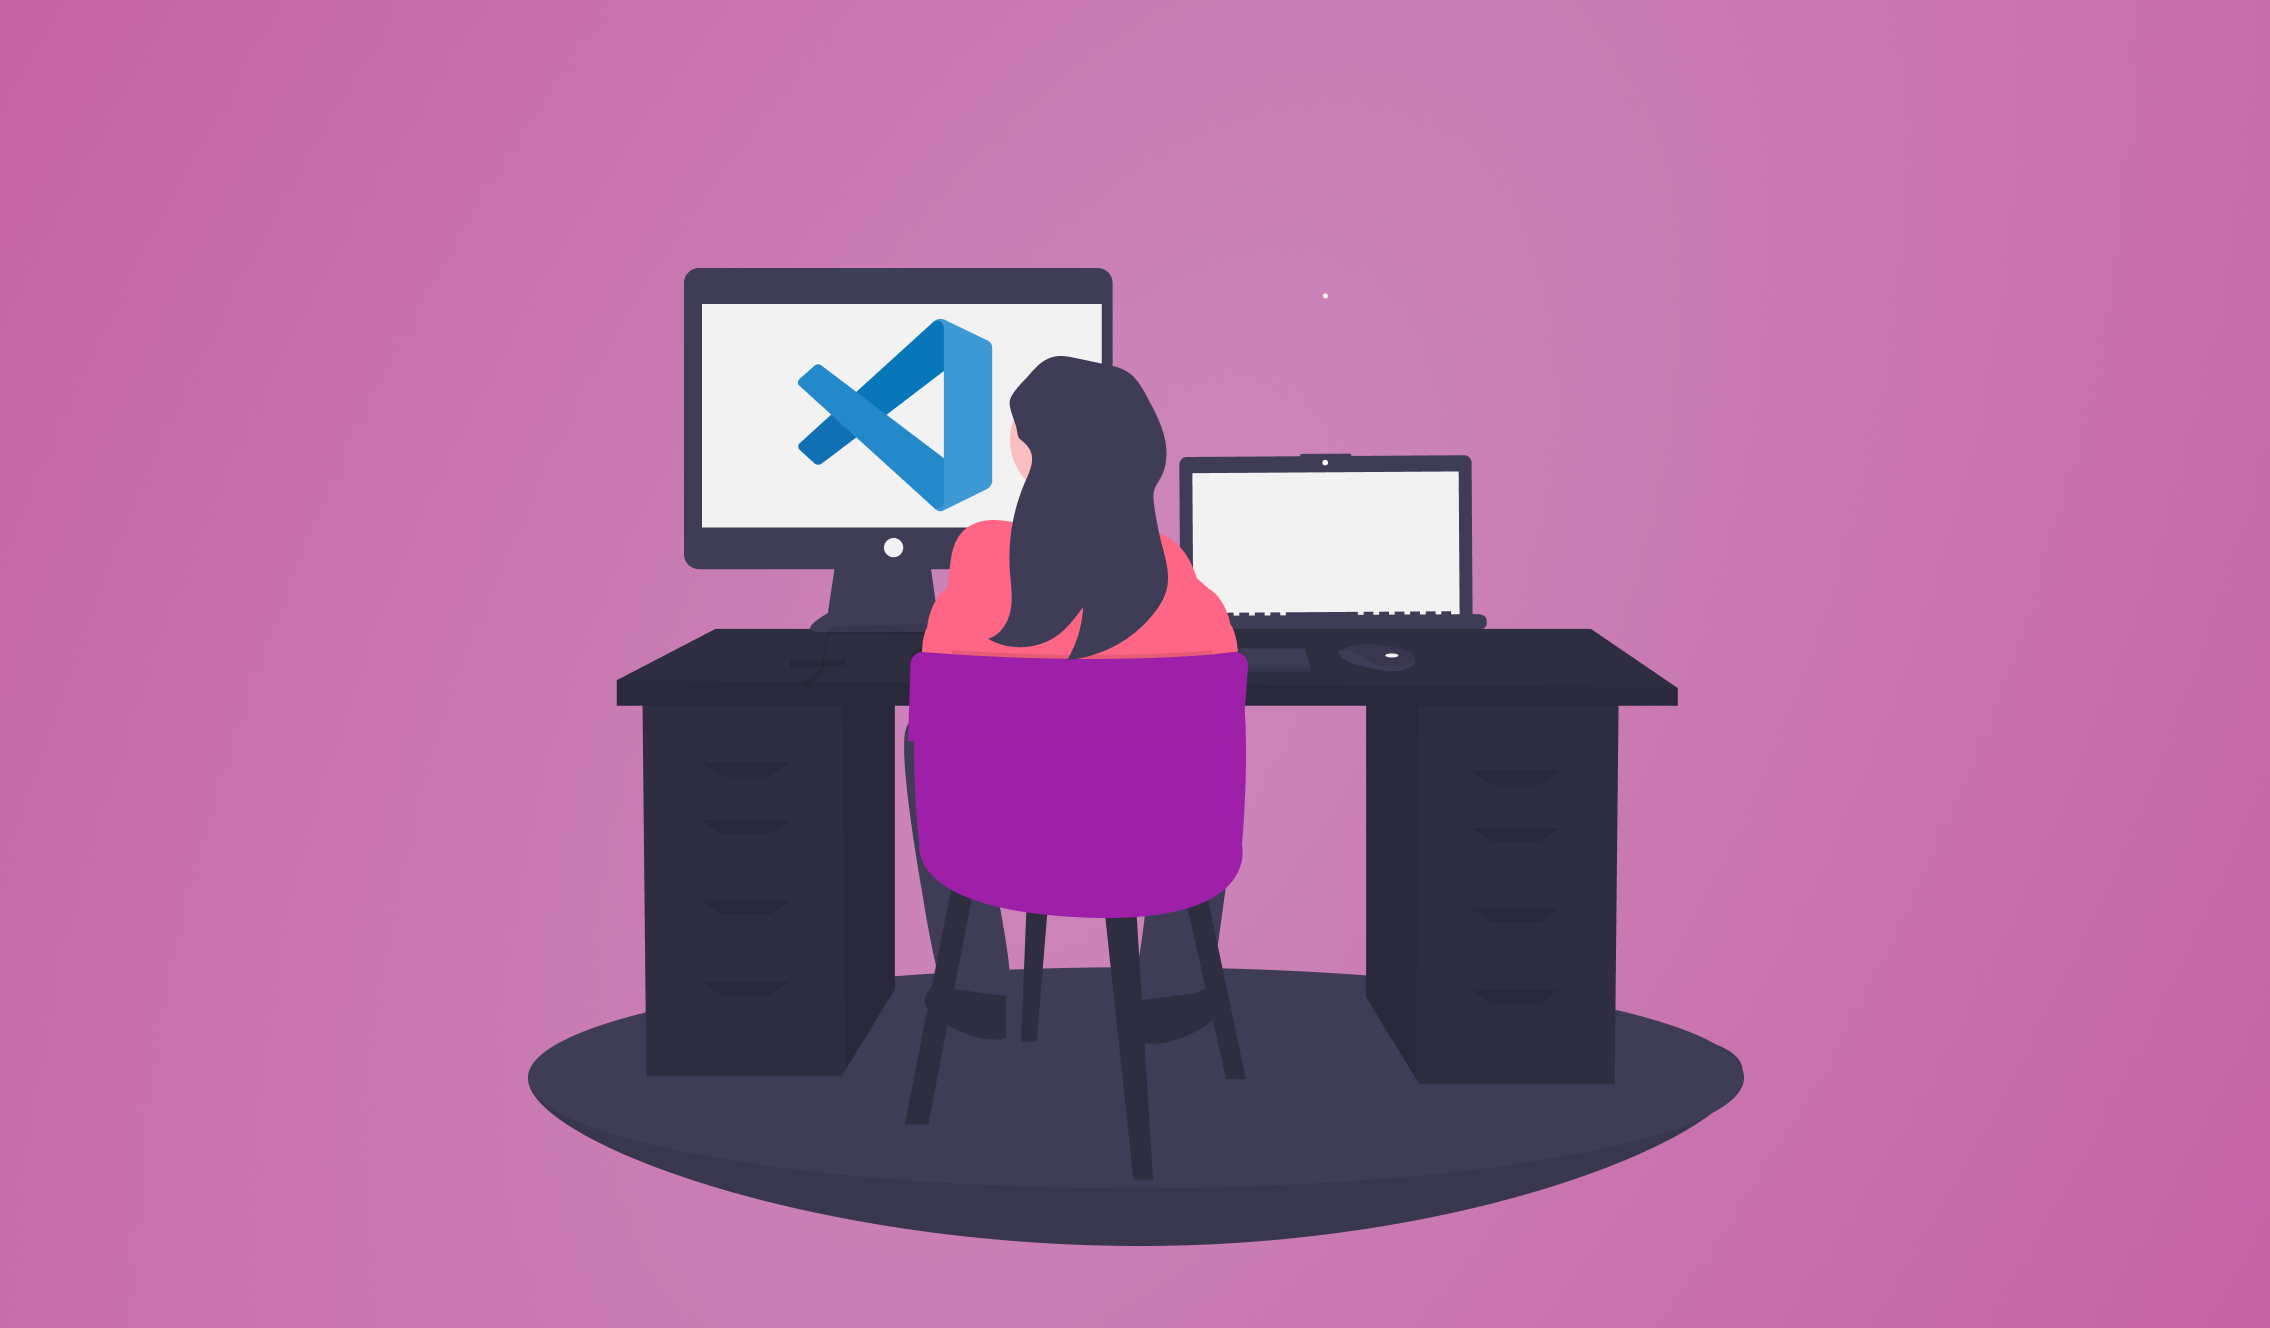 /4-tips-on-how-to-refactor-code-in-visual-studio-code-k4p24zb feature image